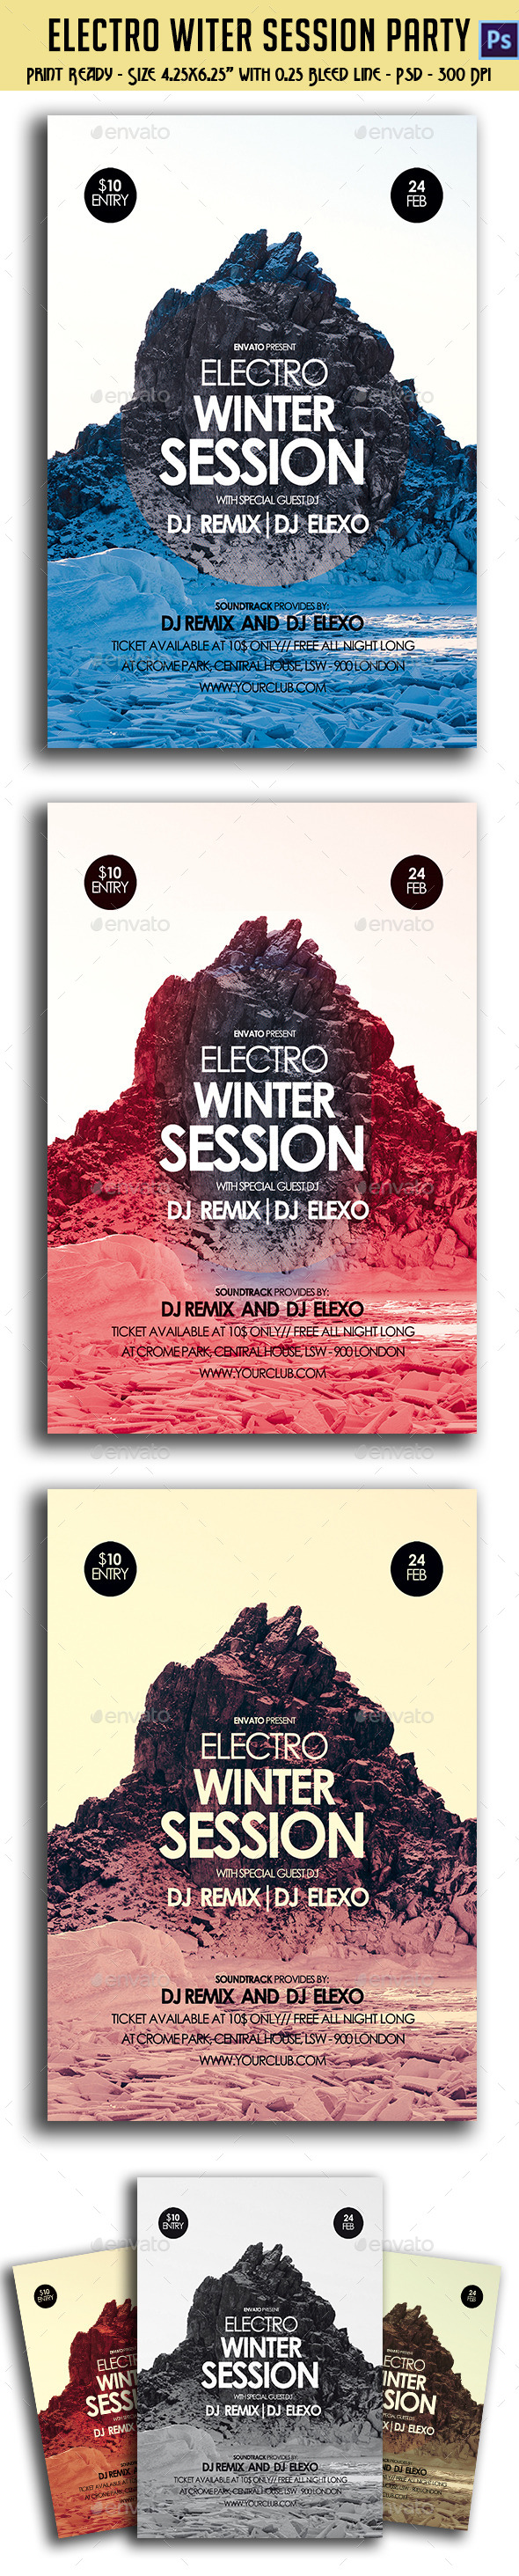 Electronic Winter Session Party Flyer - Clubs & Parties Events